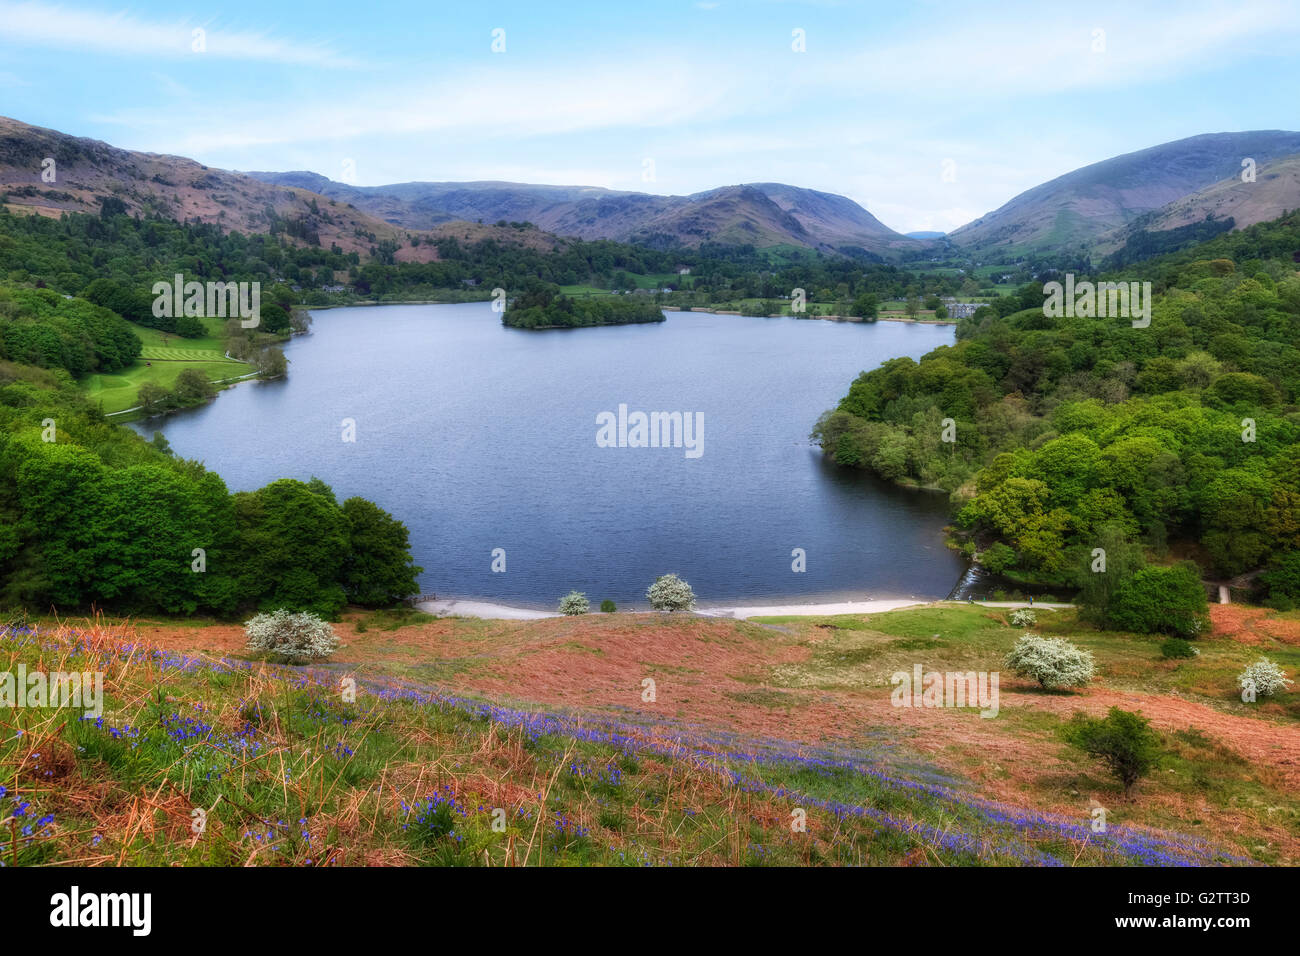 Grasmere, Loughrigg Terrace, Lake District, Cumbria, England, UK - Stock Image